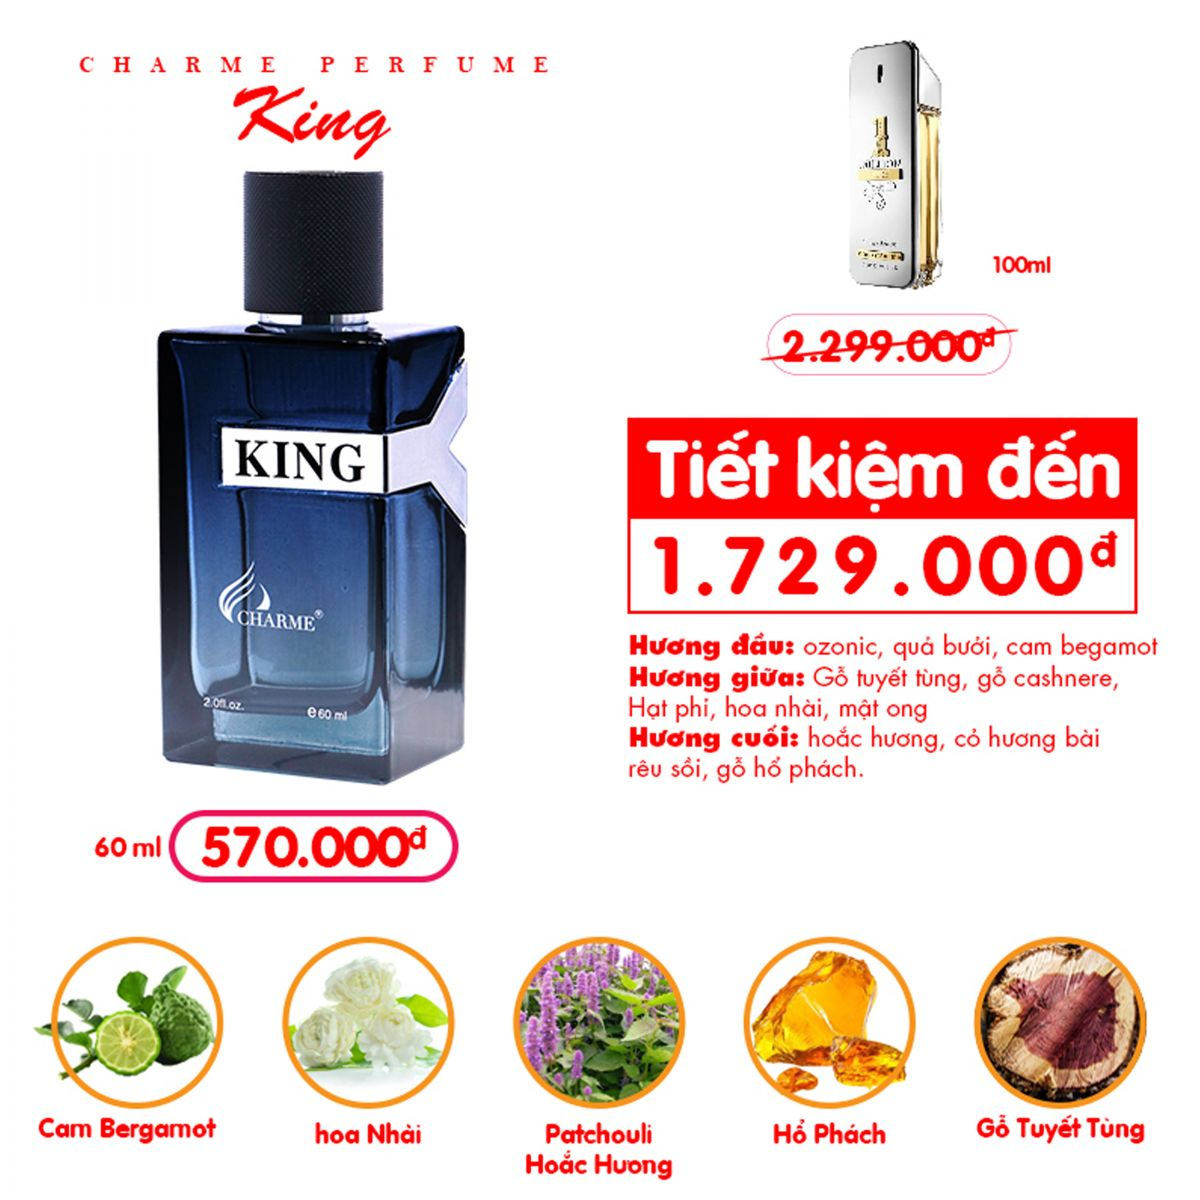 Charme - King 60ml - Nuoc hoa nam